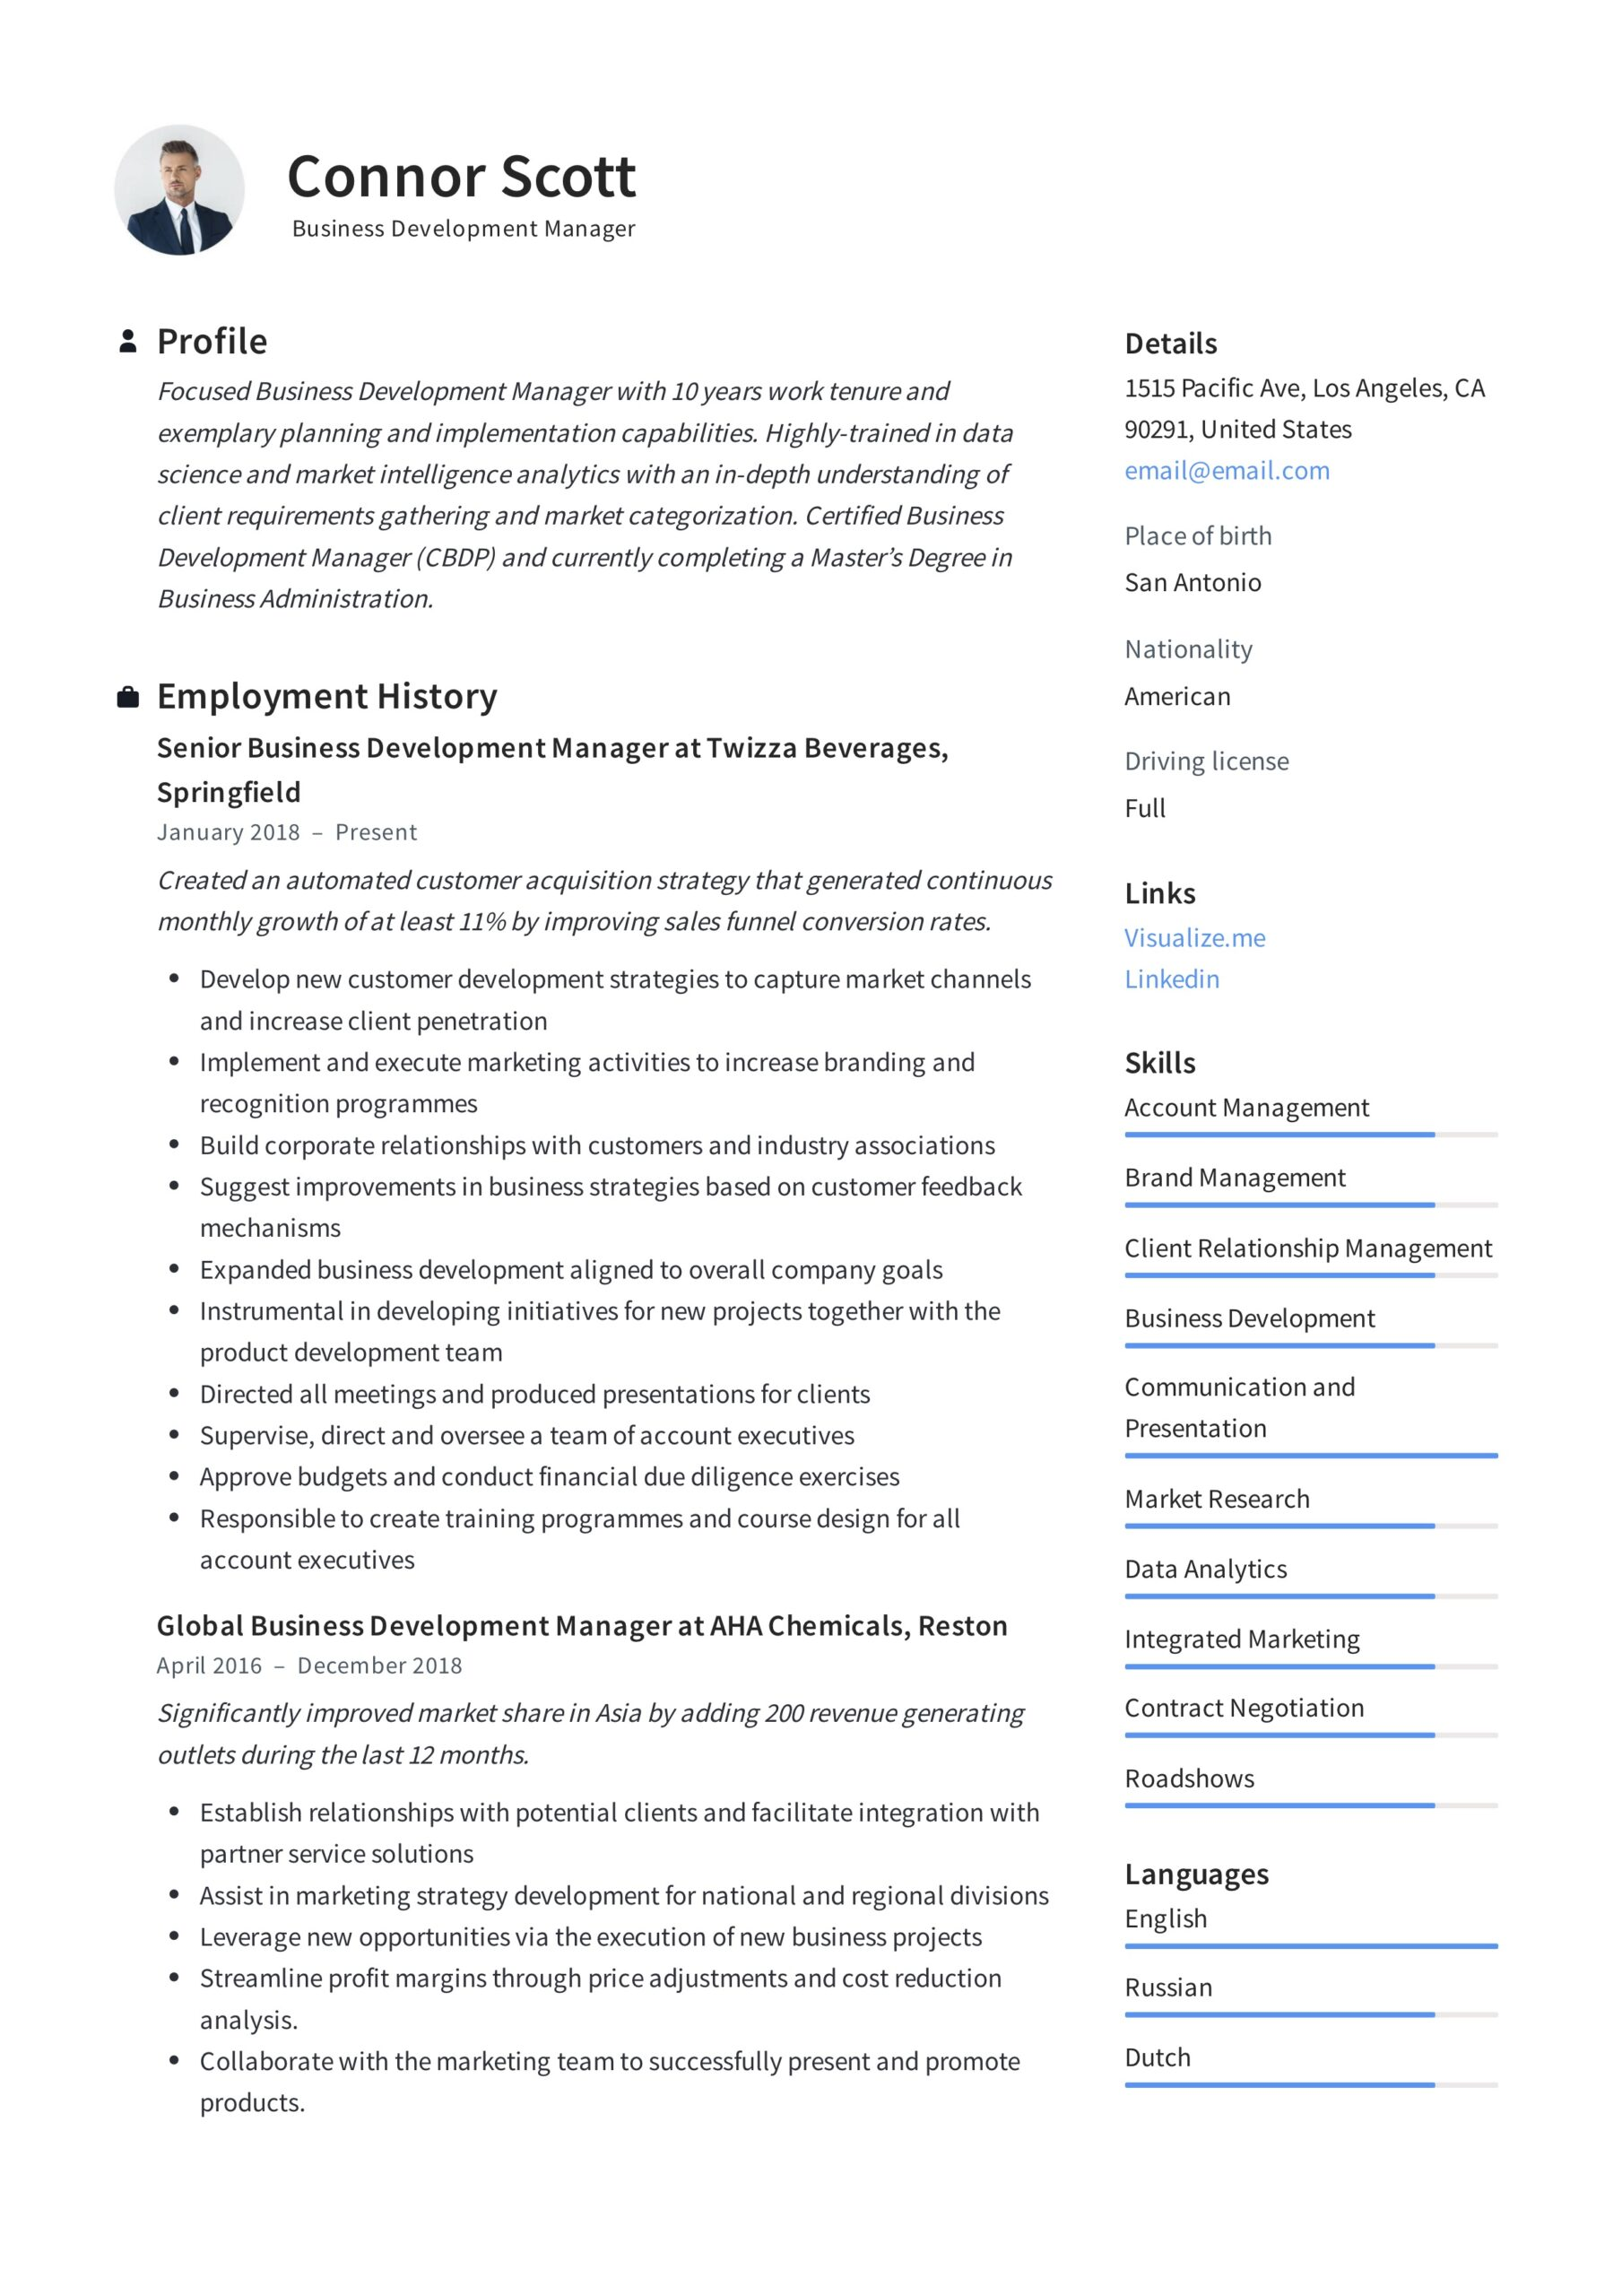 business development manager resume guide templates pdf should put home address on Resume Business Manager Resume